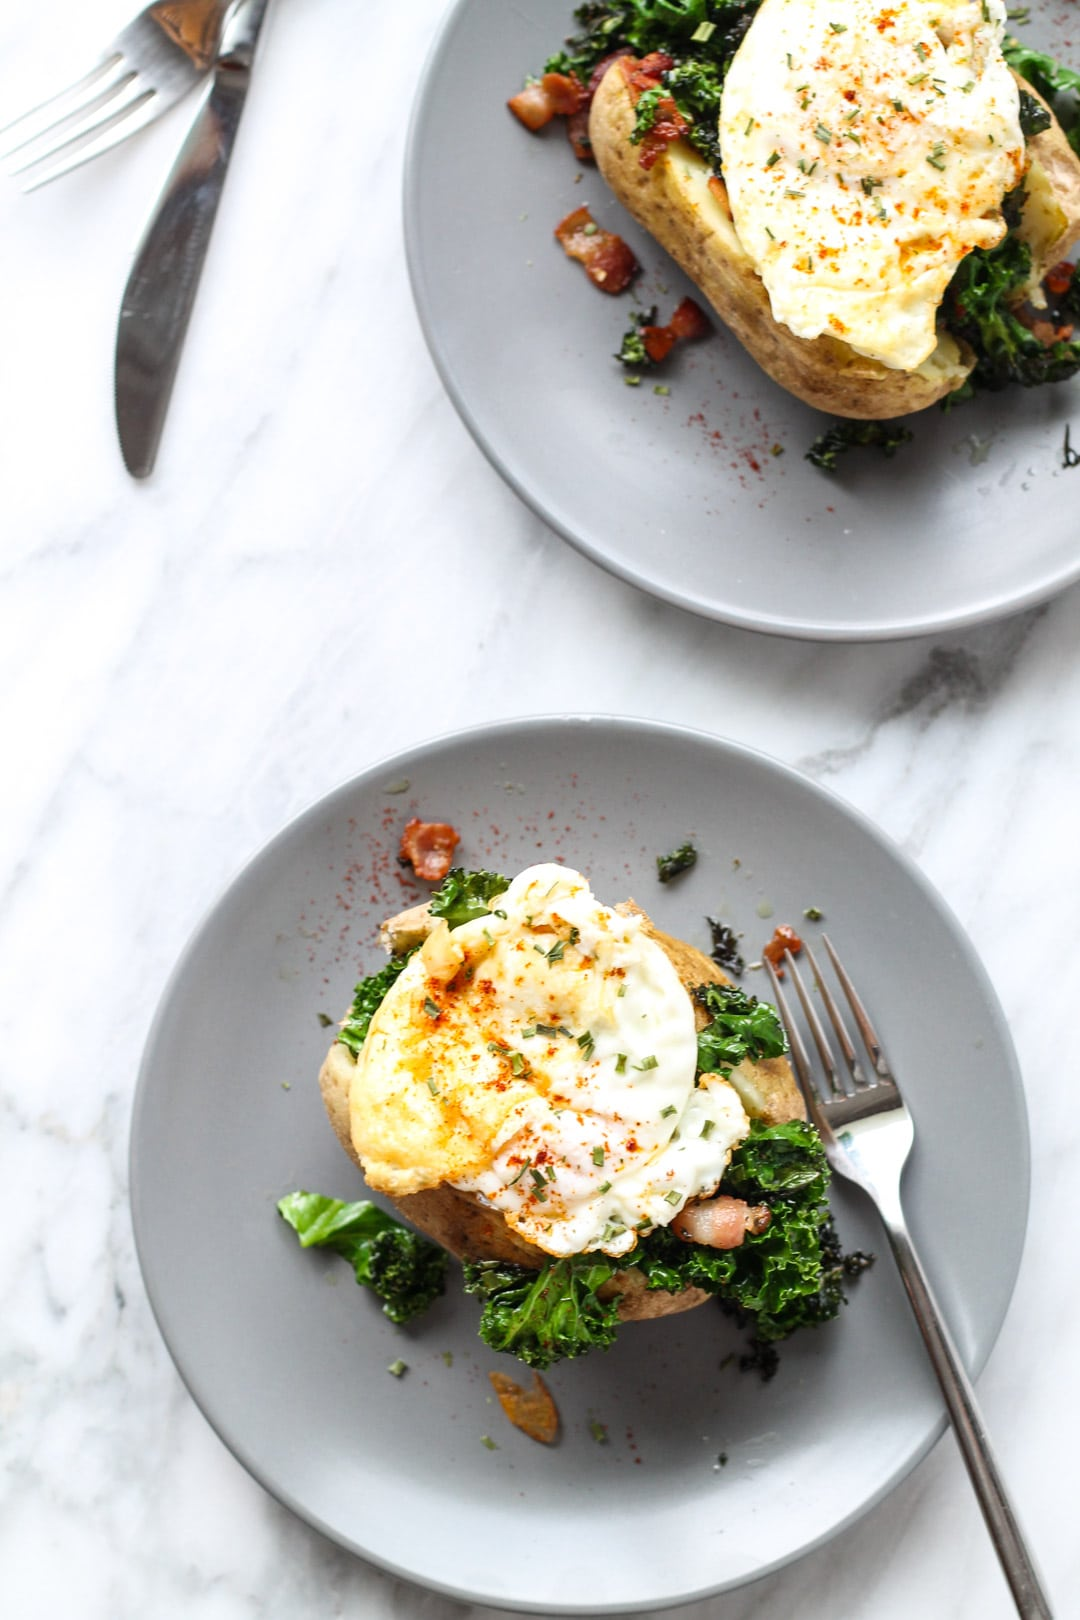 Two plates with a single stuffed potato on each. The potatoes are stuffed with kale and bacon, and topped with a fried egg.